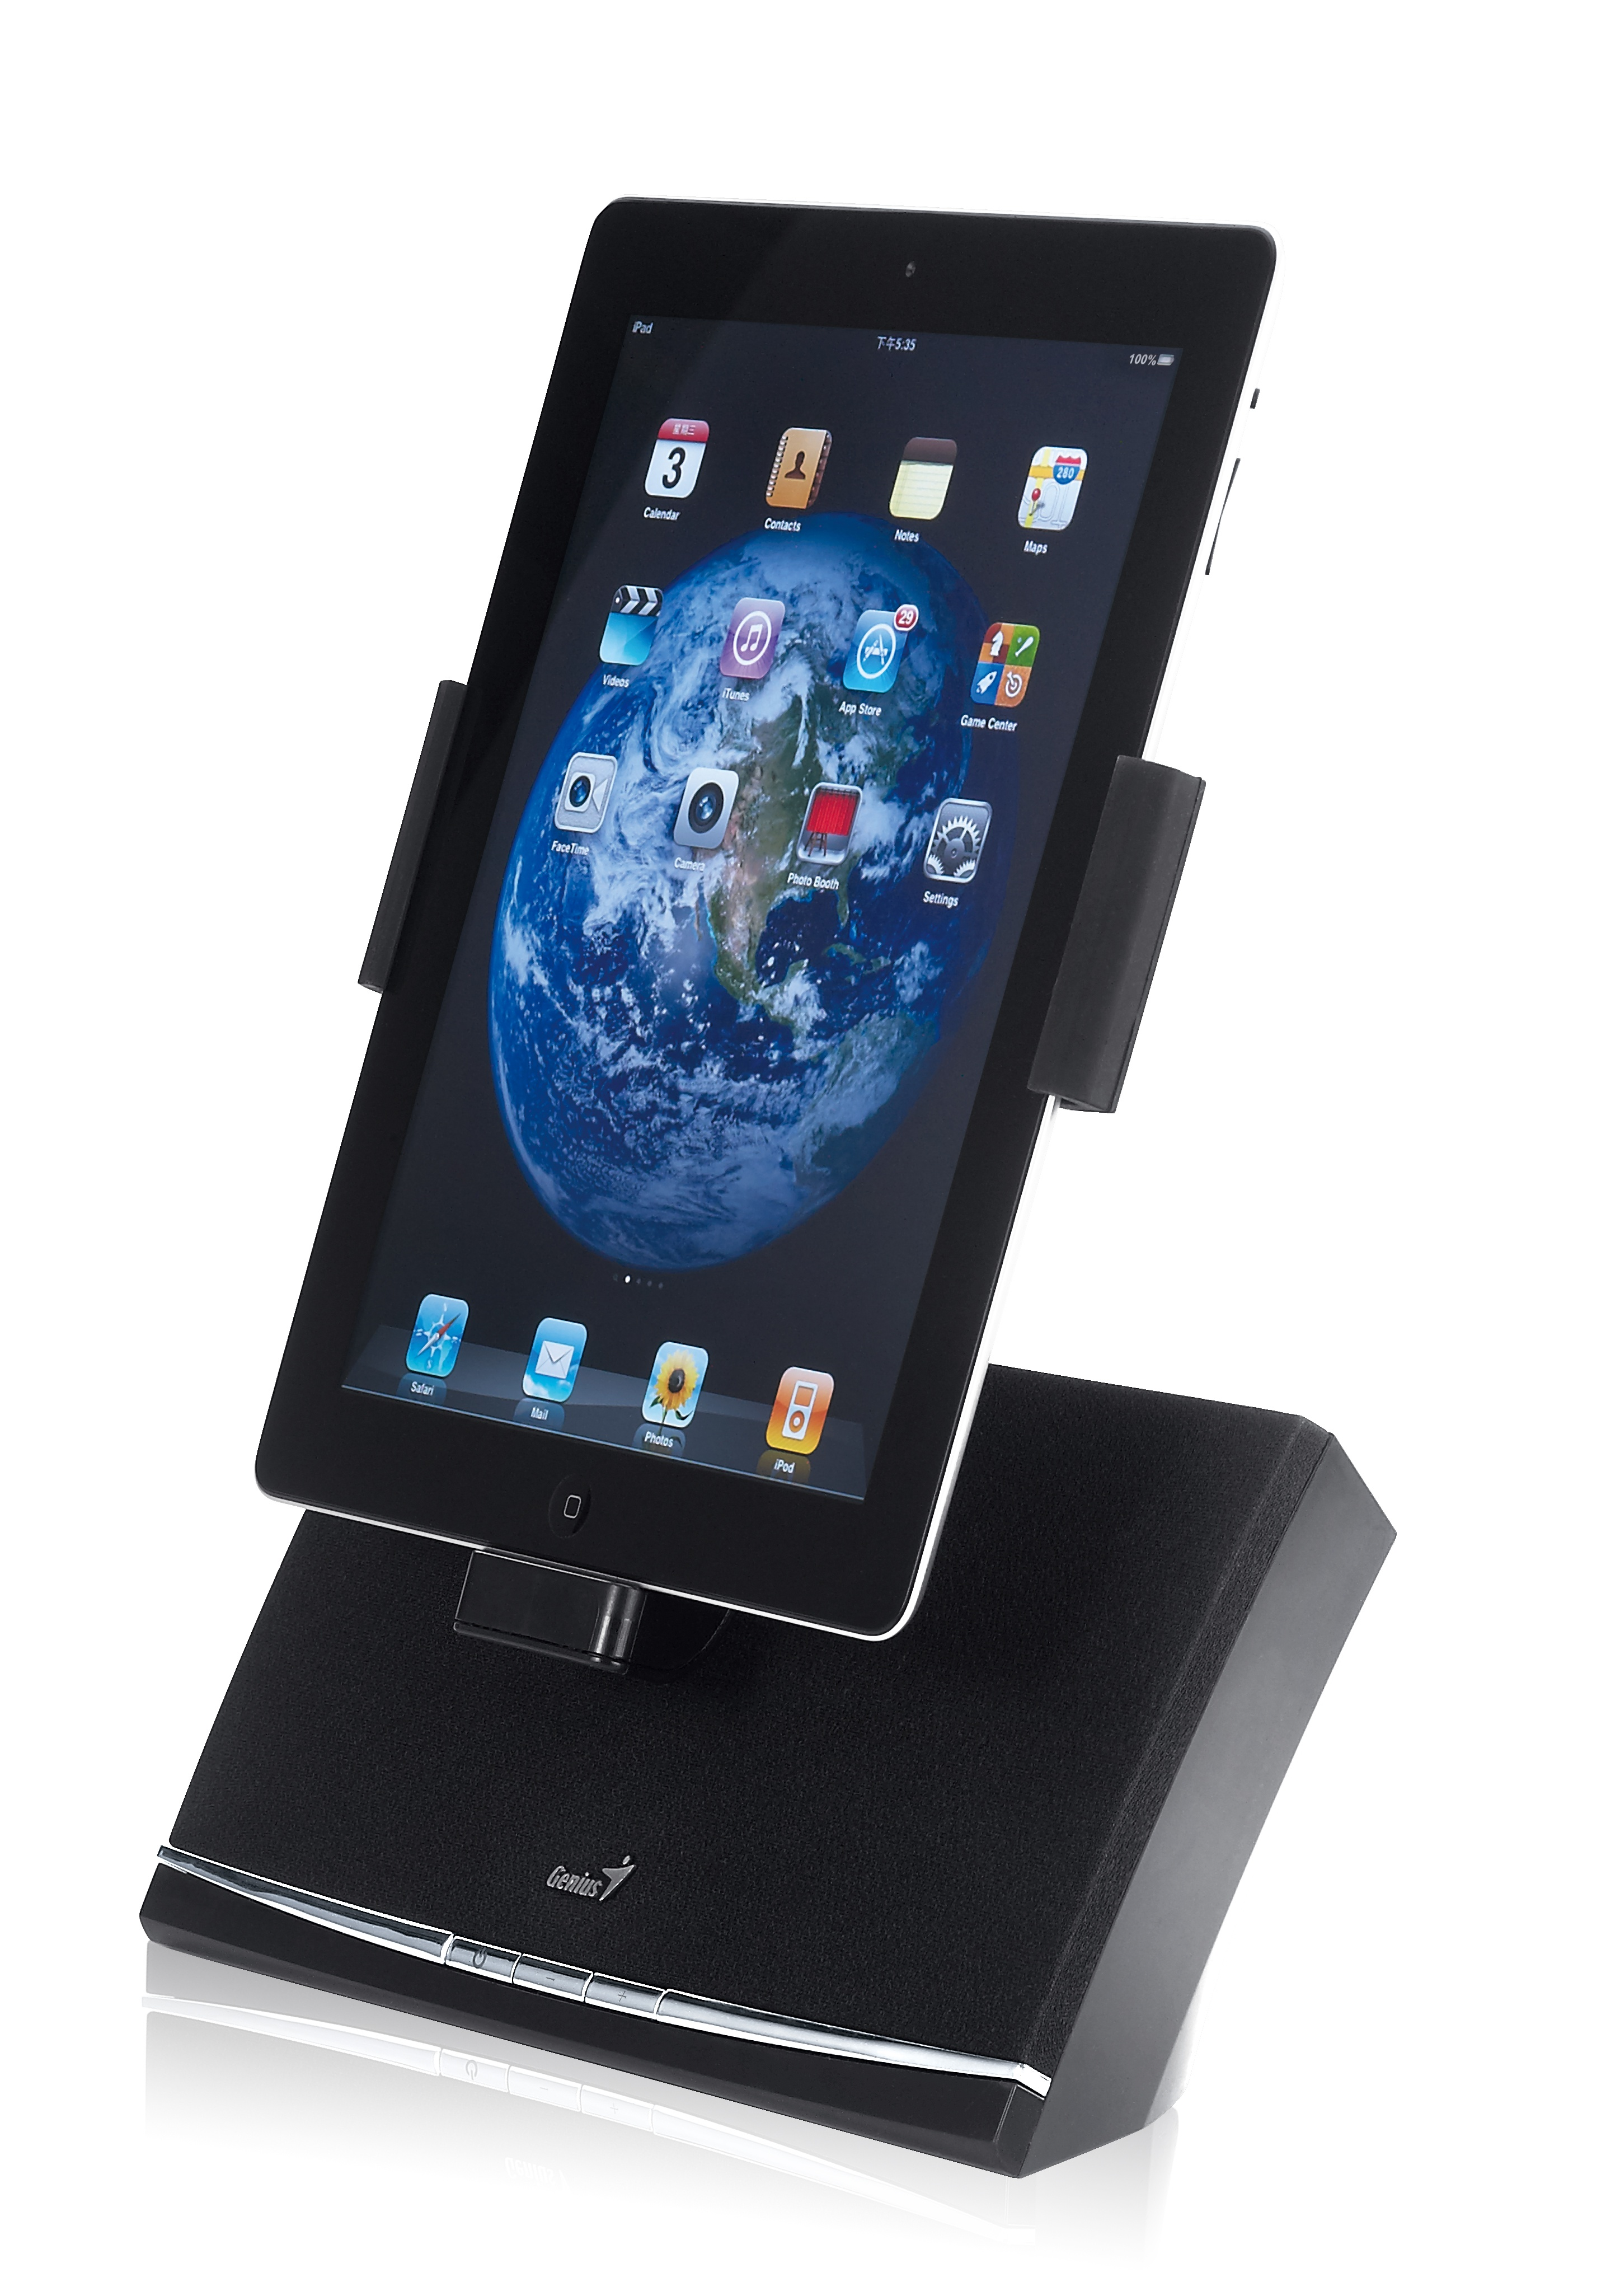 Announcing the iPad/iPhone/iPod Speaker System Line by Genius